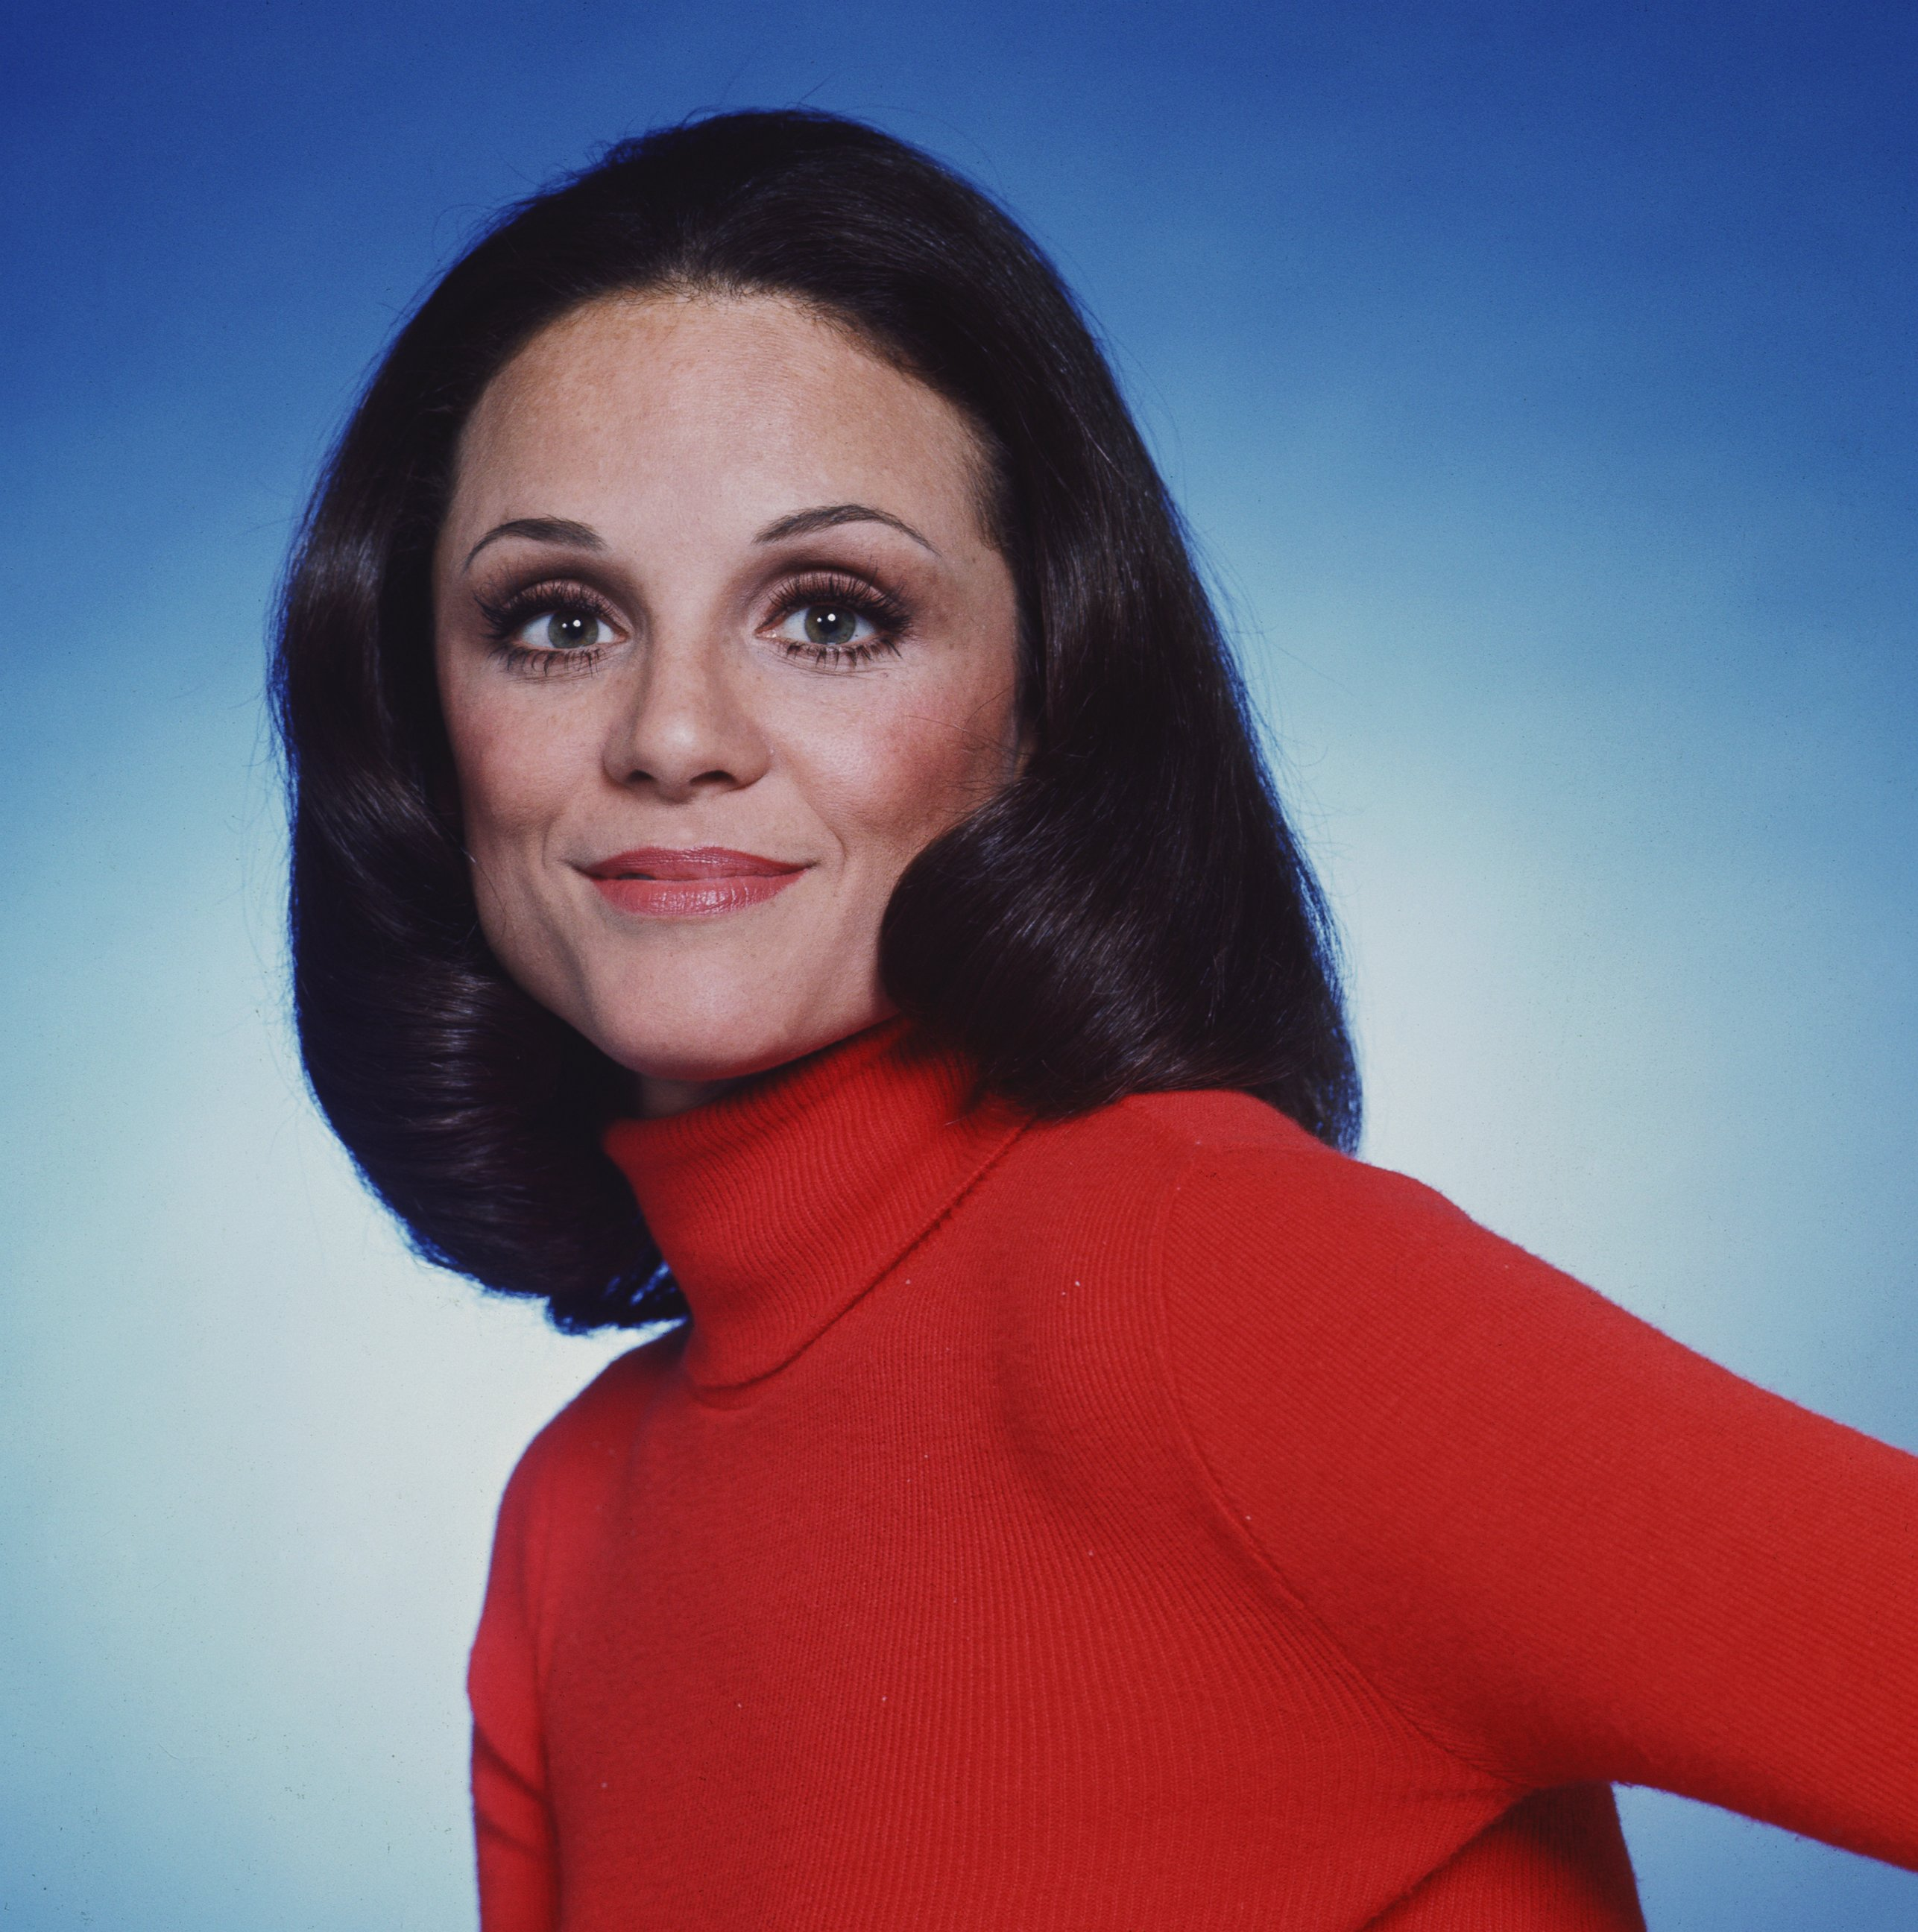 Valerie Harper Videos at ABC News Video Archive at abcnews.com